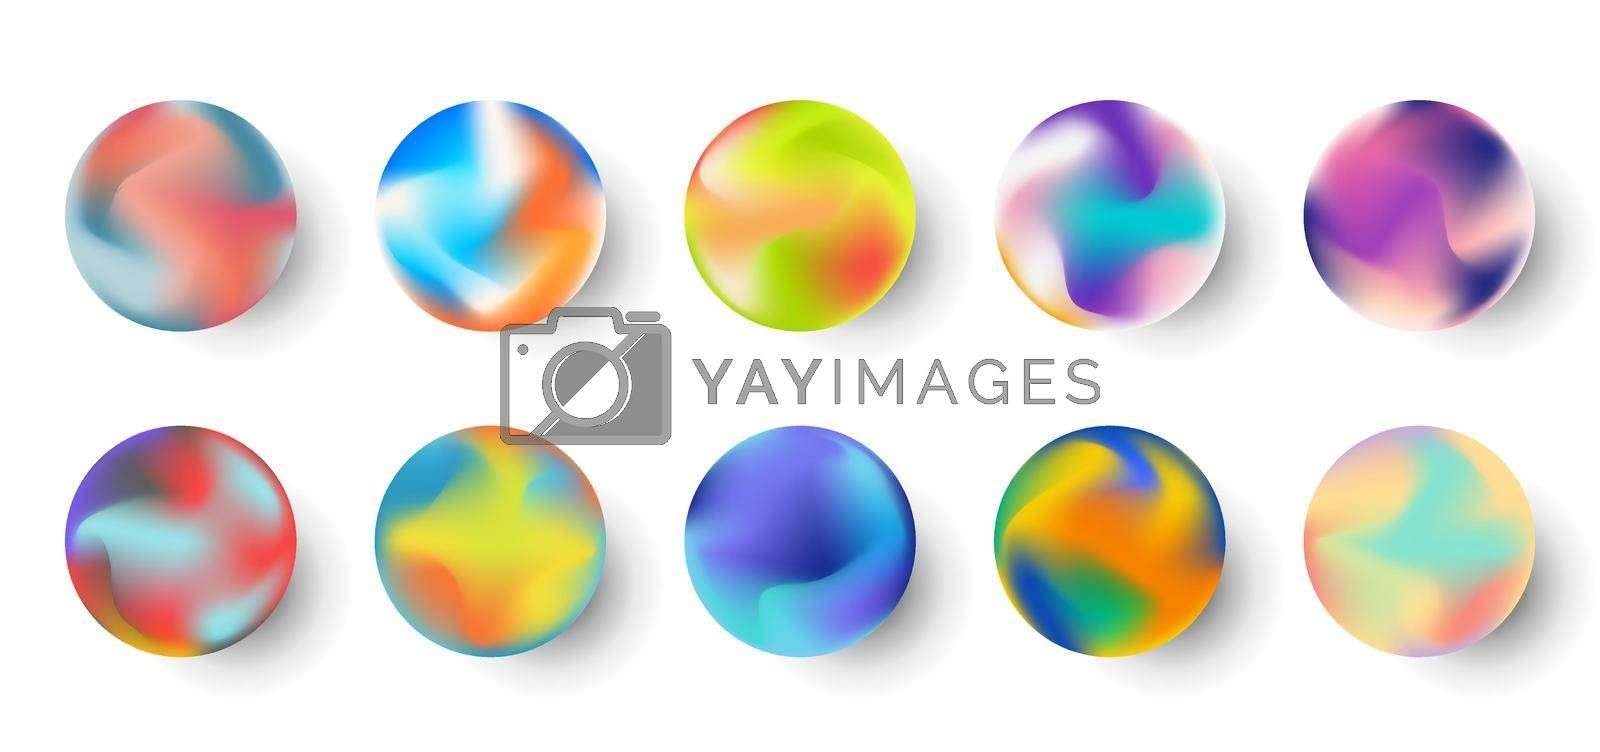 Royalty free image of Set of gradient colorful sphere fluid shape elements isolated on white background by phochi